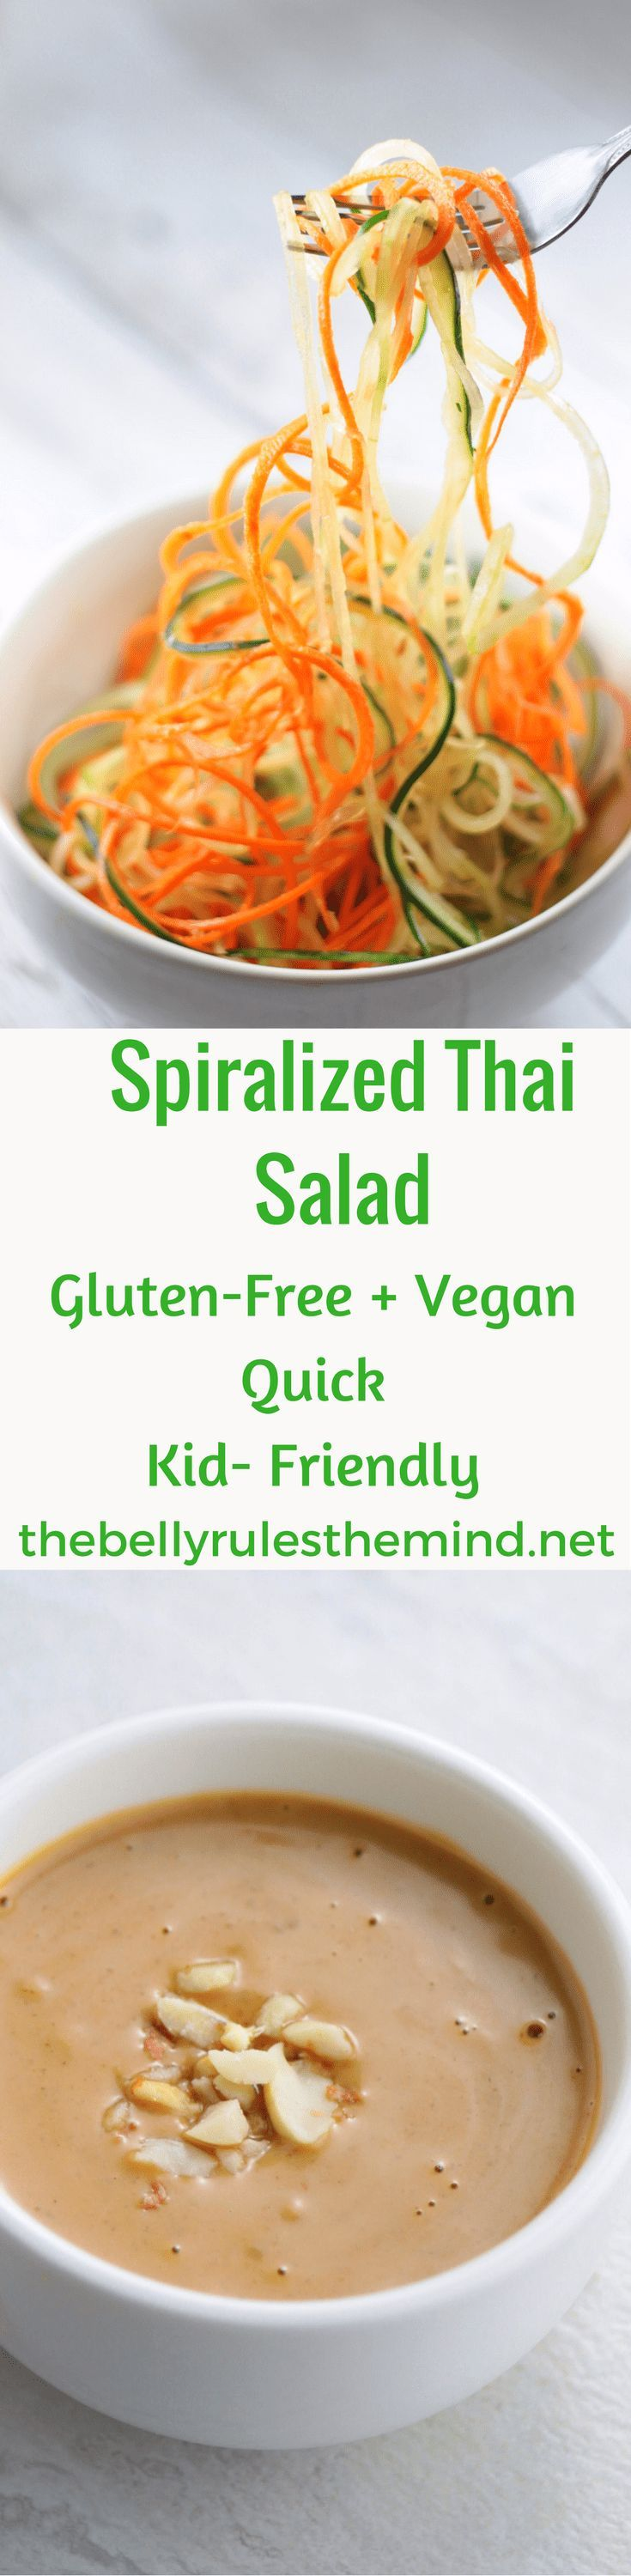 Spiralized Thai Salad :Vegan + GF  salad made with cucumbers, Carrot Beetroot, mint + cilantro and topped with a quick  creamy Thai dressing. Ready 10 mins  with Ninja Intelli-Sense Kitchen System with Auto-Spiralizer. #NinjaSnapTapGo #NinjaPartner #ad @Ninjakitchen @bellyrulesdmind